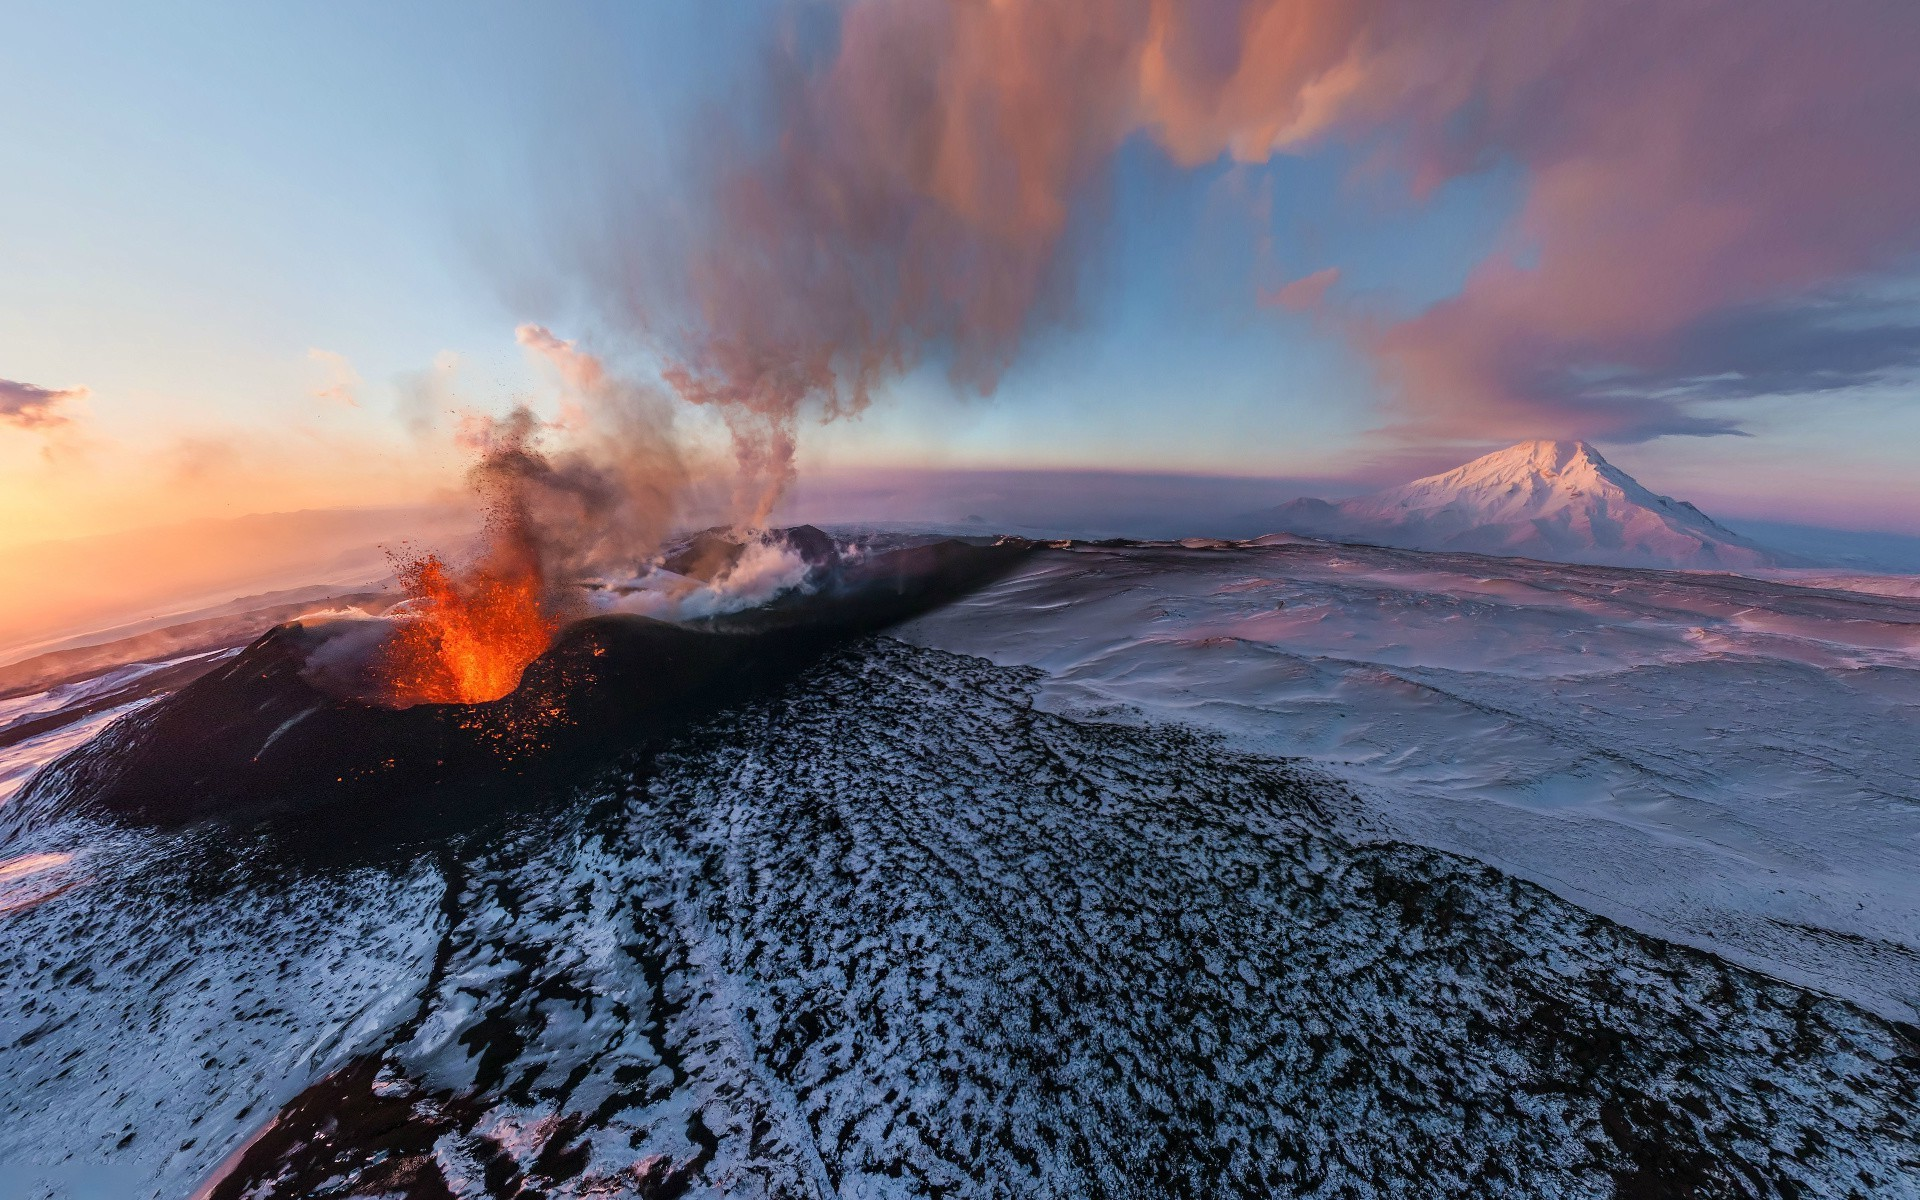 the volcano volcano sunset snow eruption landscape dawn water mountain outdoors winter evening steam smoke sky fog travel